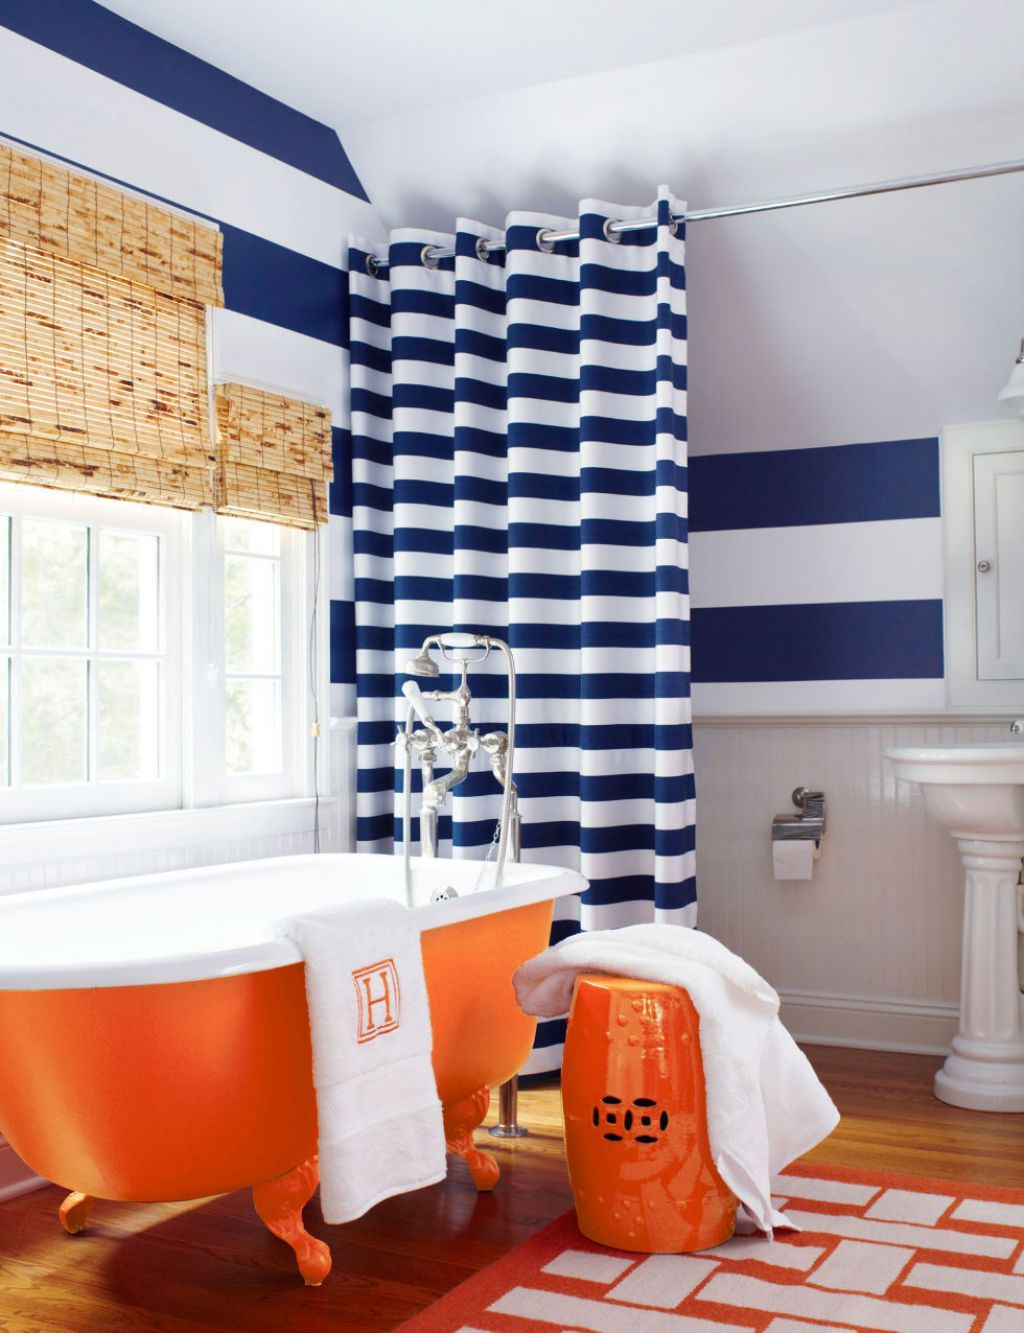 Bathroom With Stripes Walls And Shower Curtain Also Using Orange ...